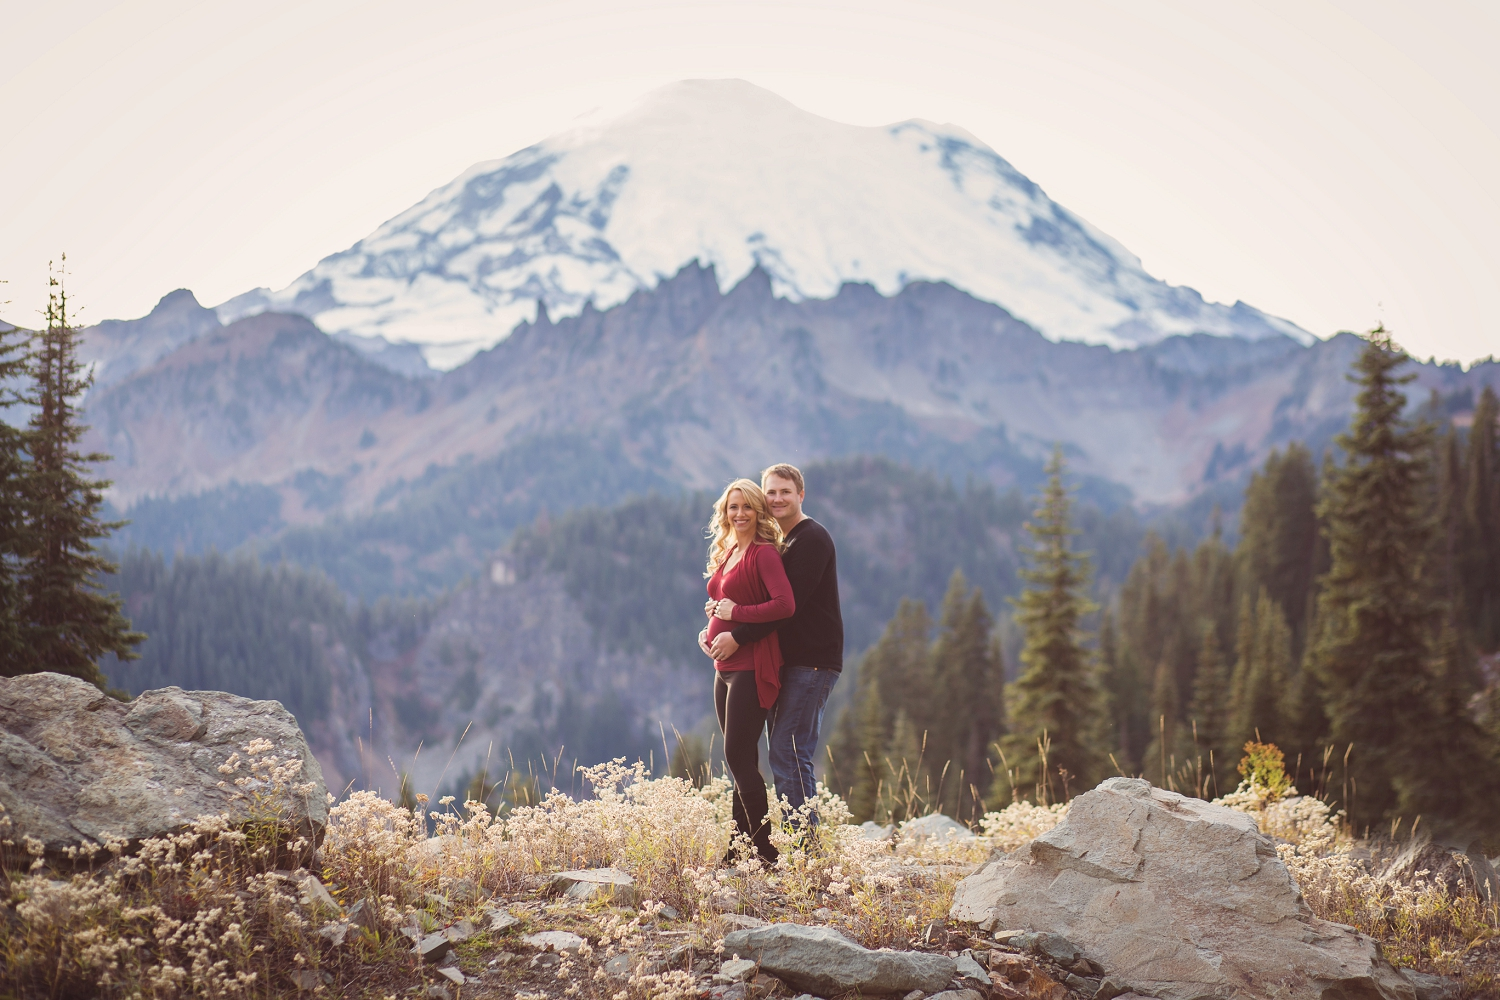 Mt_rainier_maternity_photographer_3.jpg